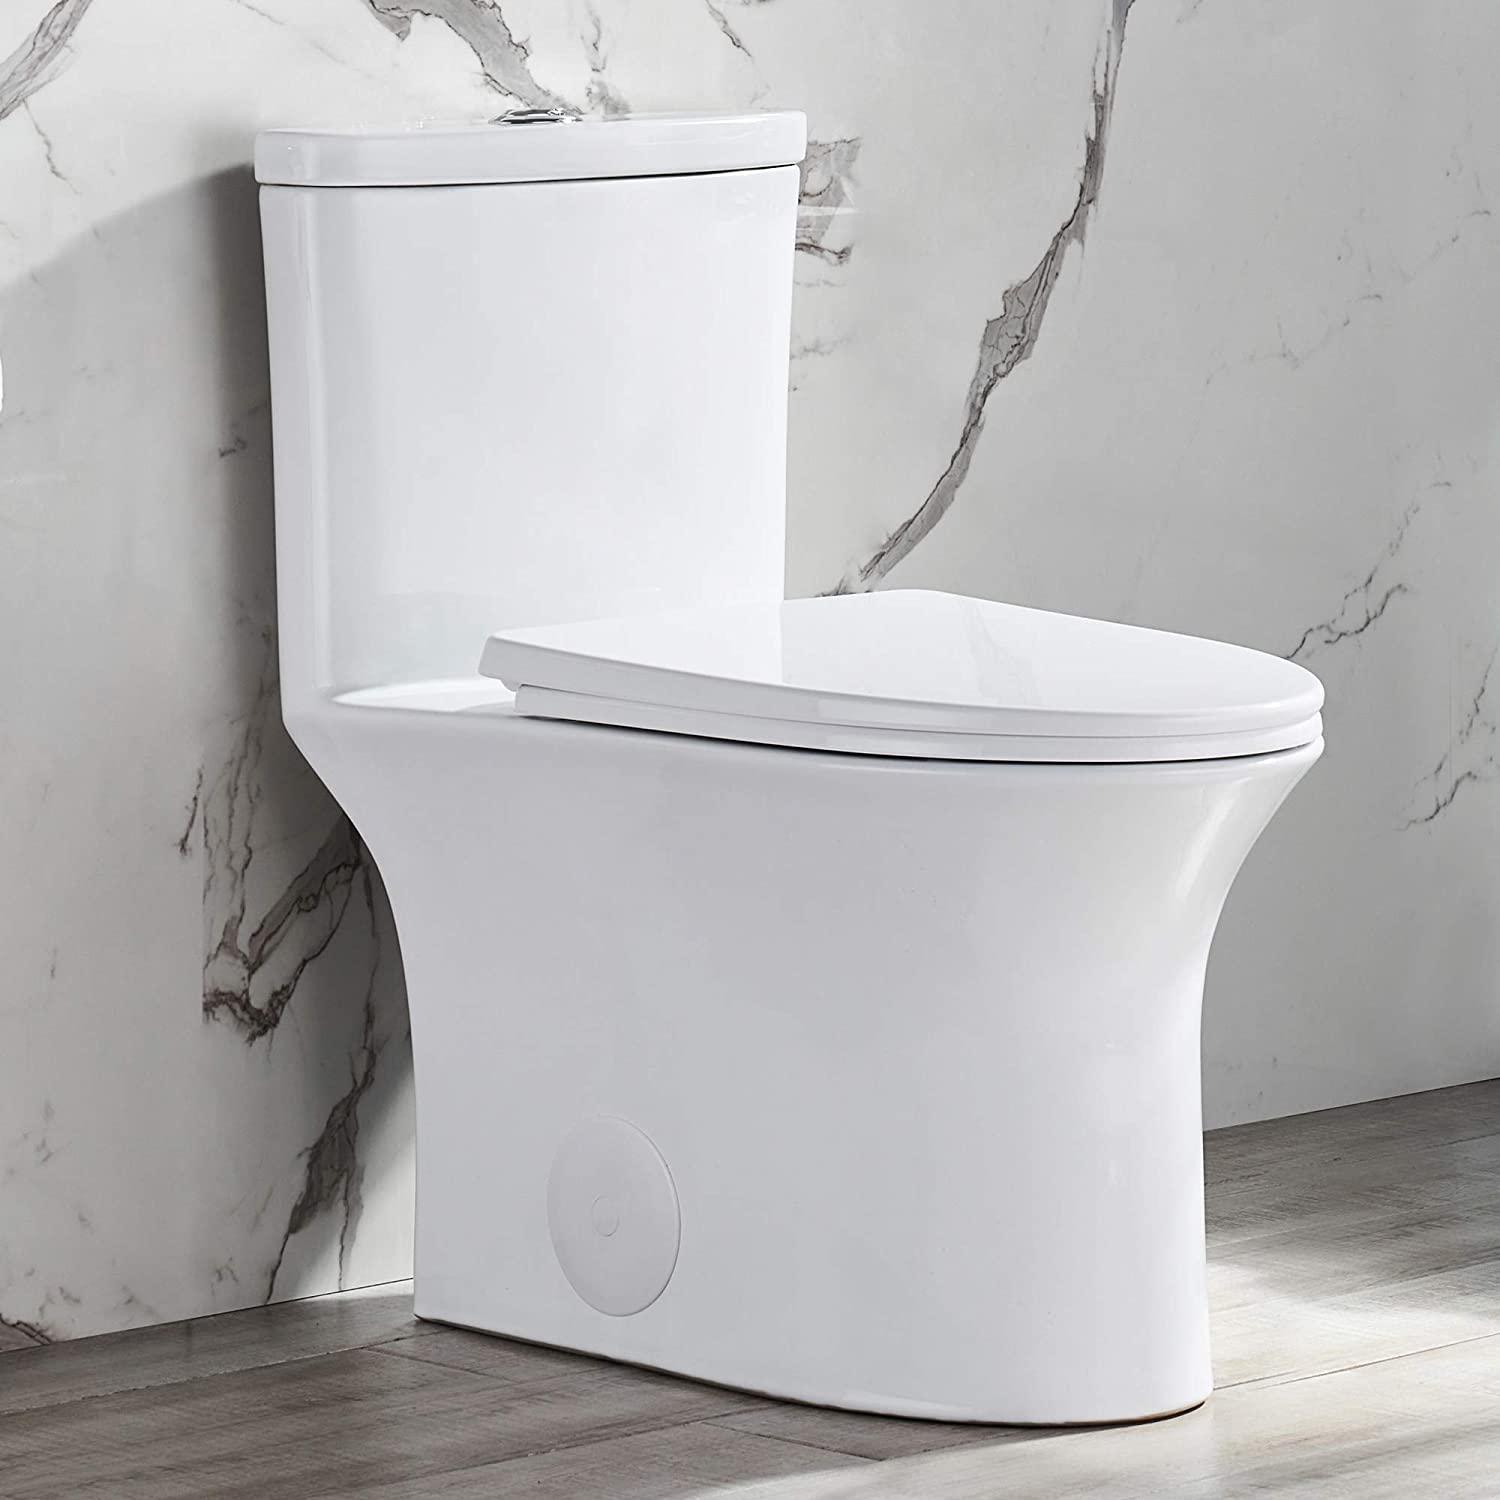 DeerValley DV-1F52676 Elongated One Piece Toilet, High Efficiency Dual Flush 0.8/1.28 GPF, Comfort Height with Soft Closing Seat White